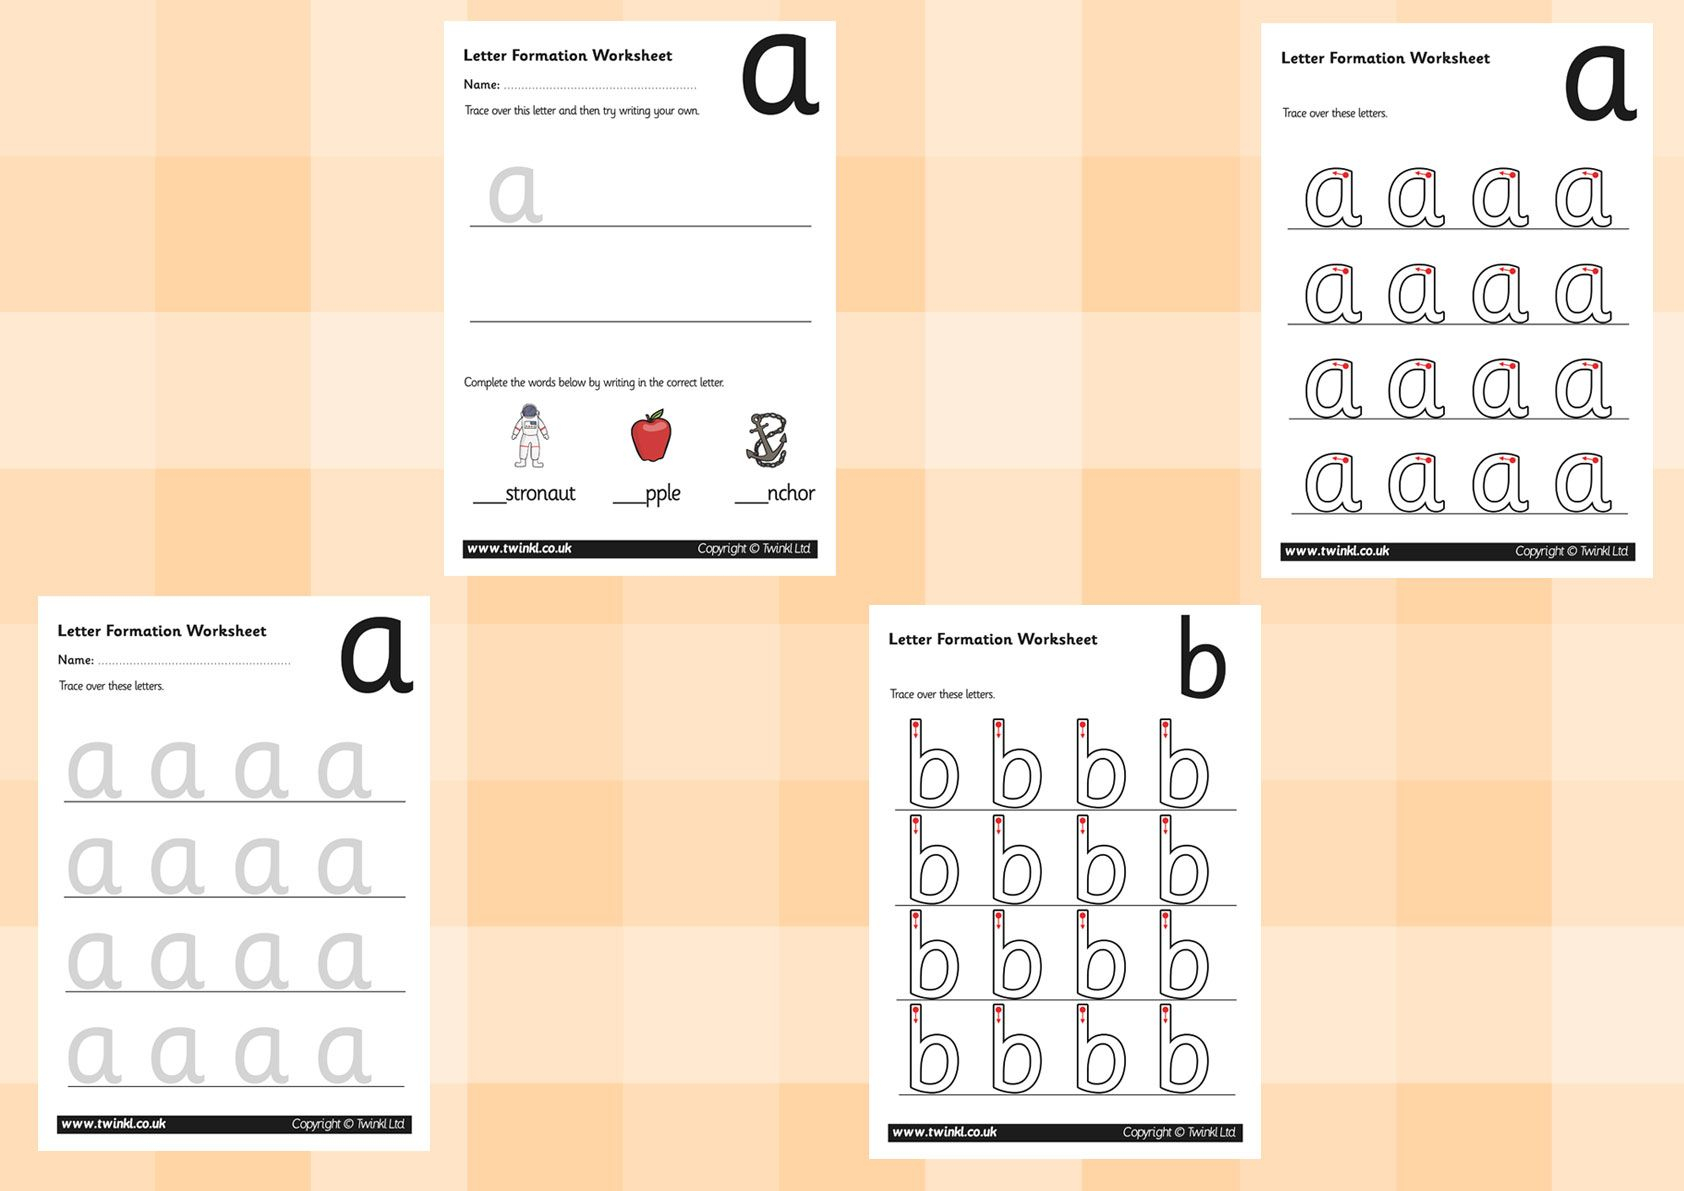 Twinkl Resources >> A-Z Letter Formation Worksheets